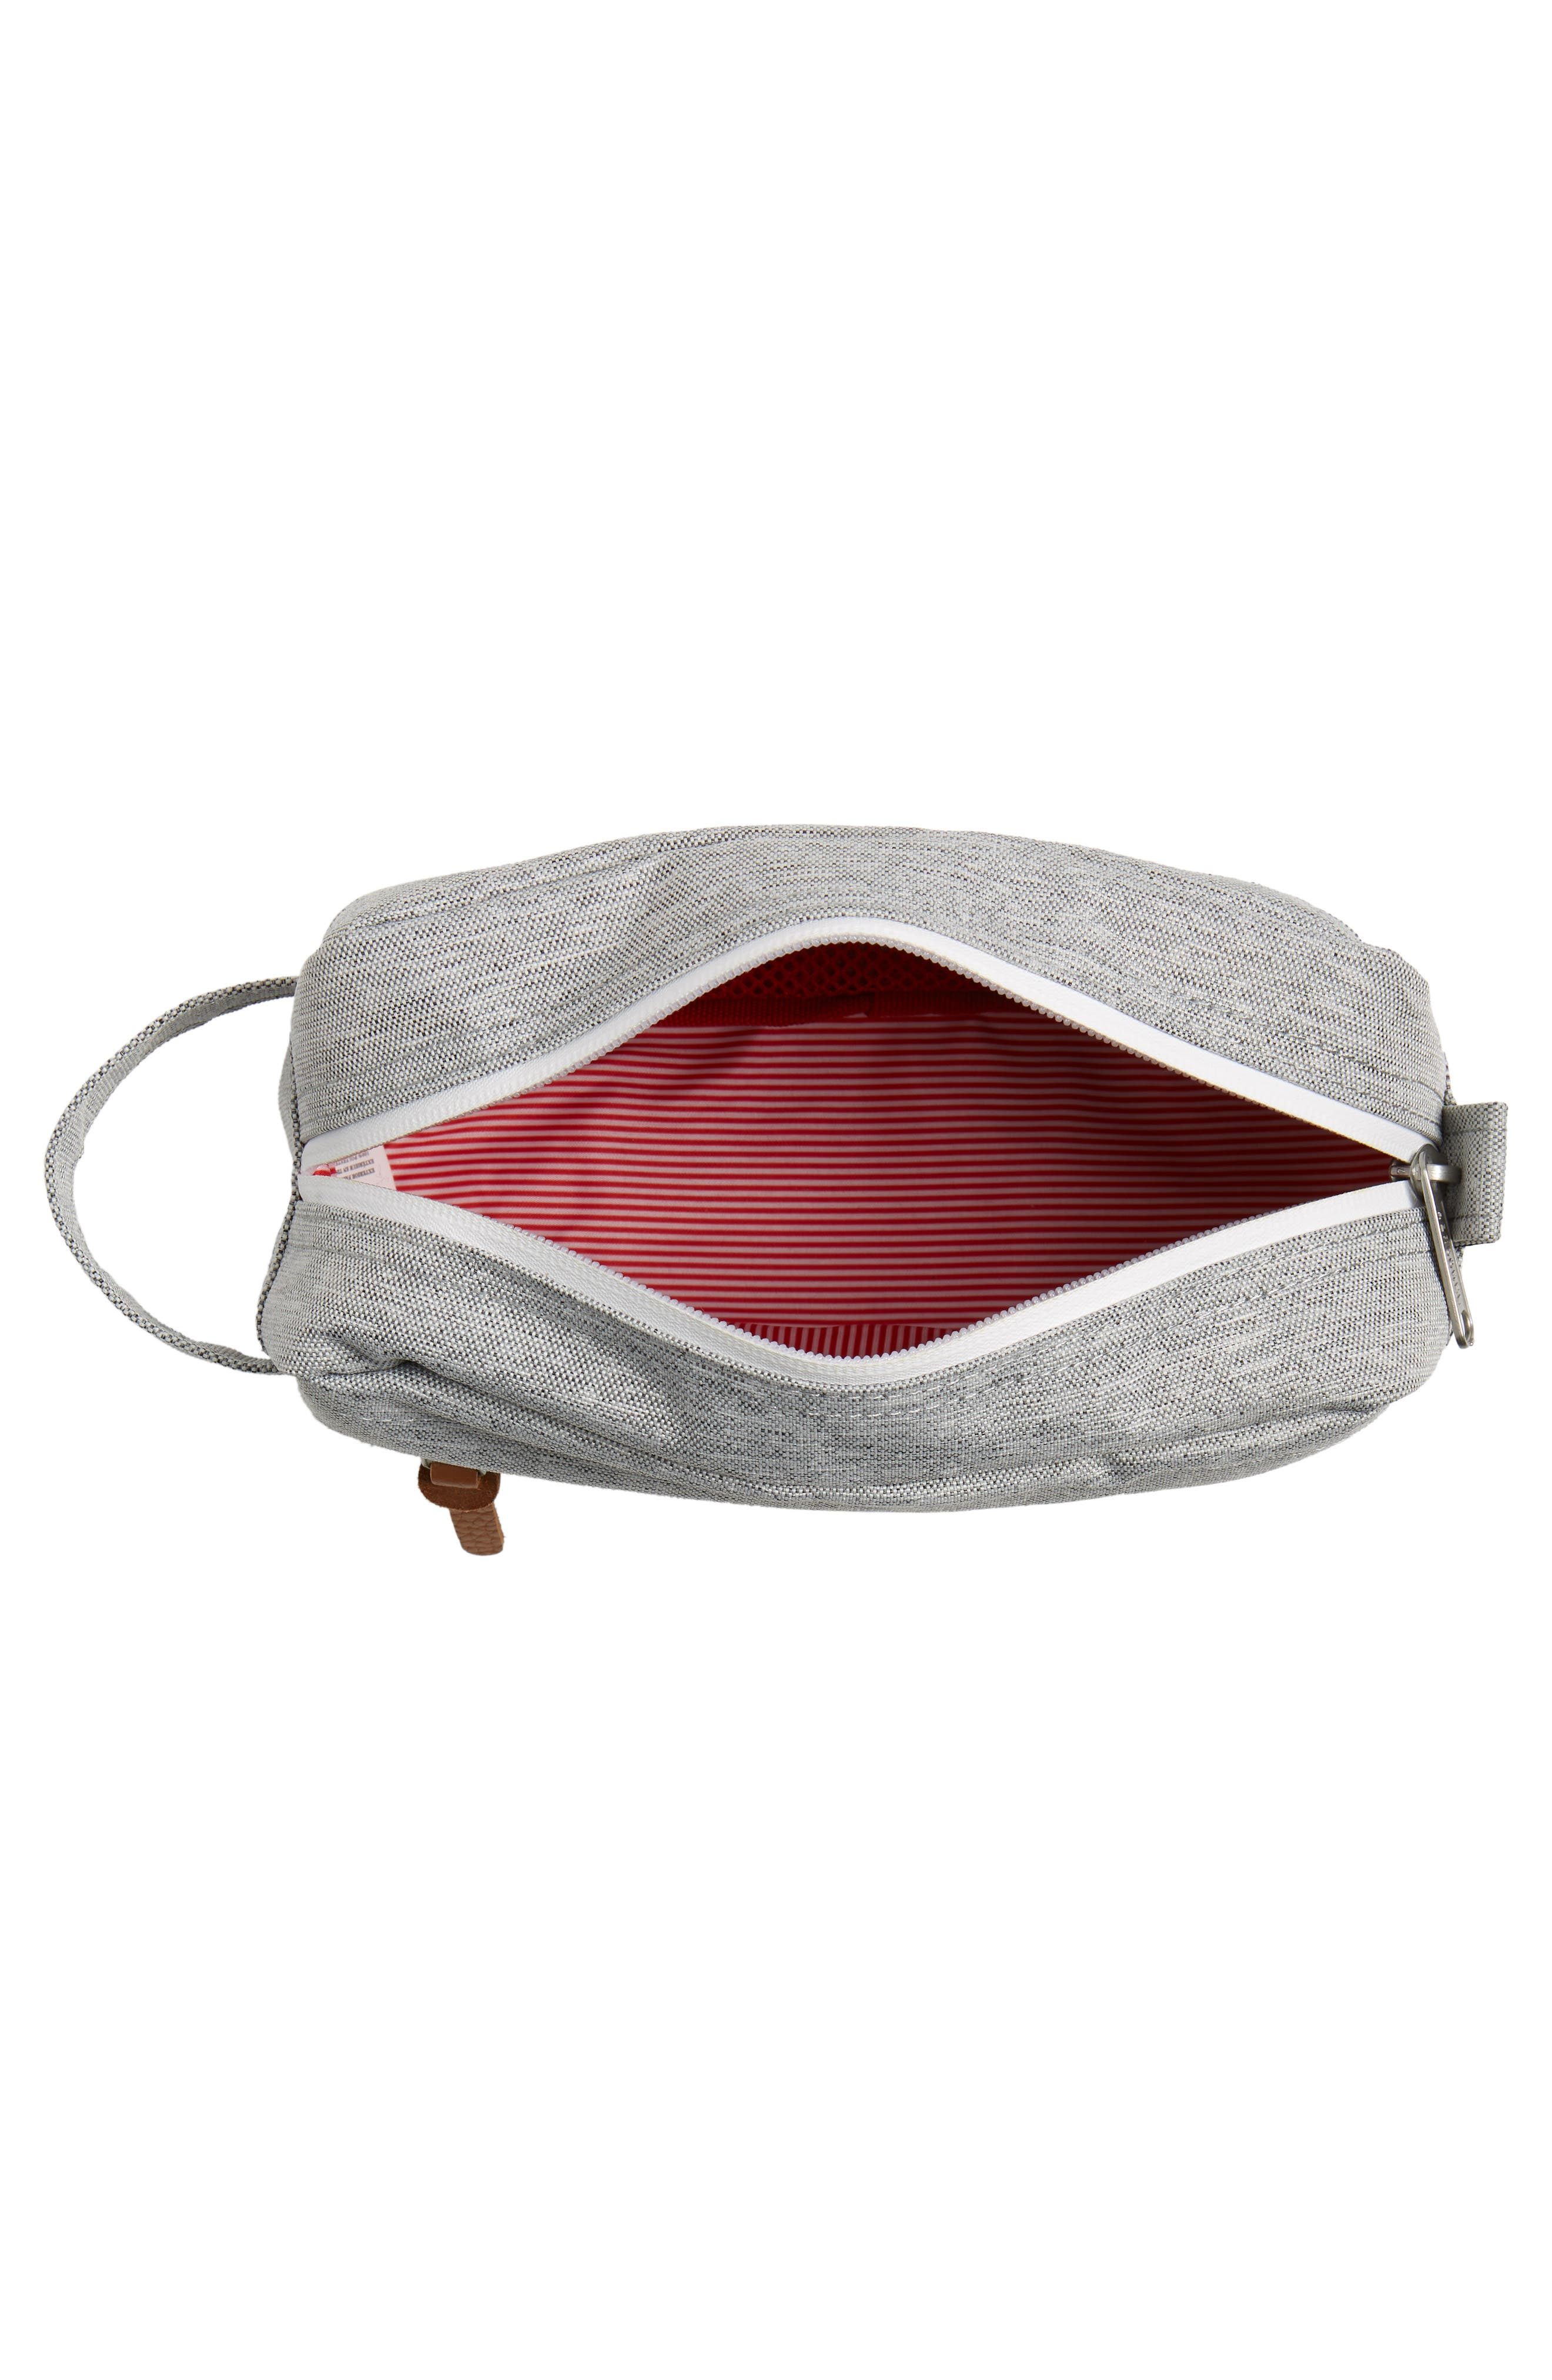 Chapter Carry-On Travel Kit,                             Alternate thumbnail 4, color,                             Light Grey Crosshatch